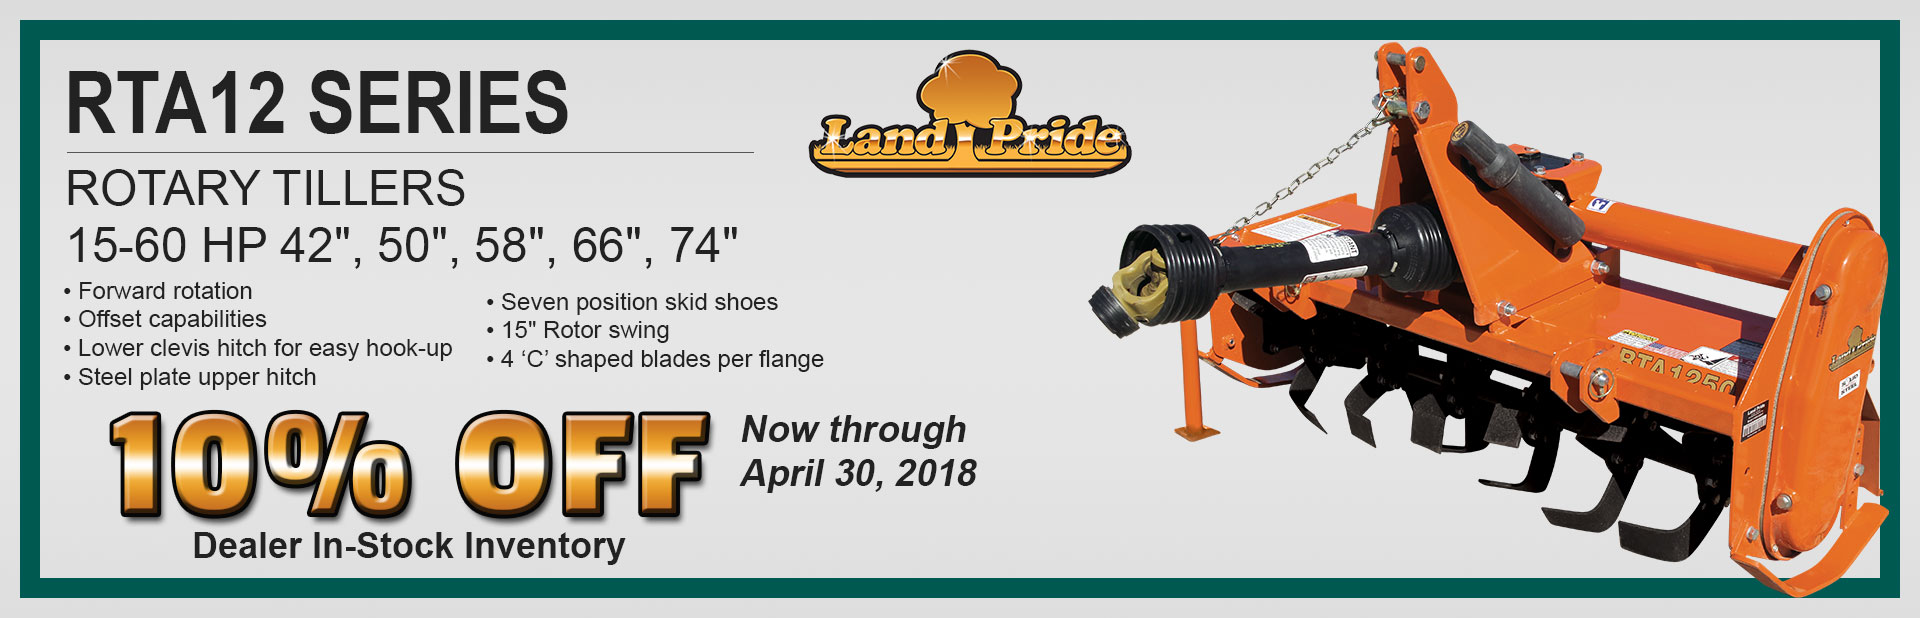 Land Pride RTA12 Series Rotary Tiller 10% Off Sale